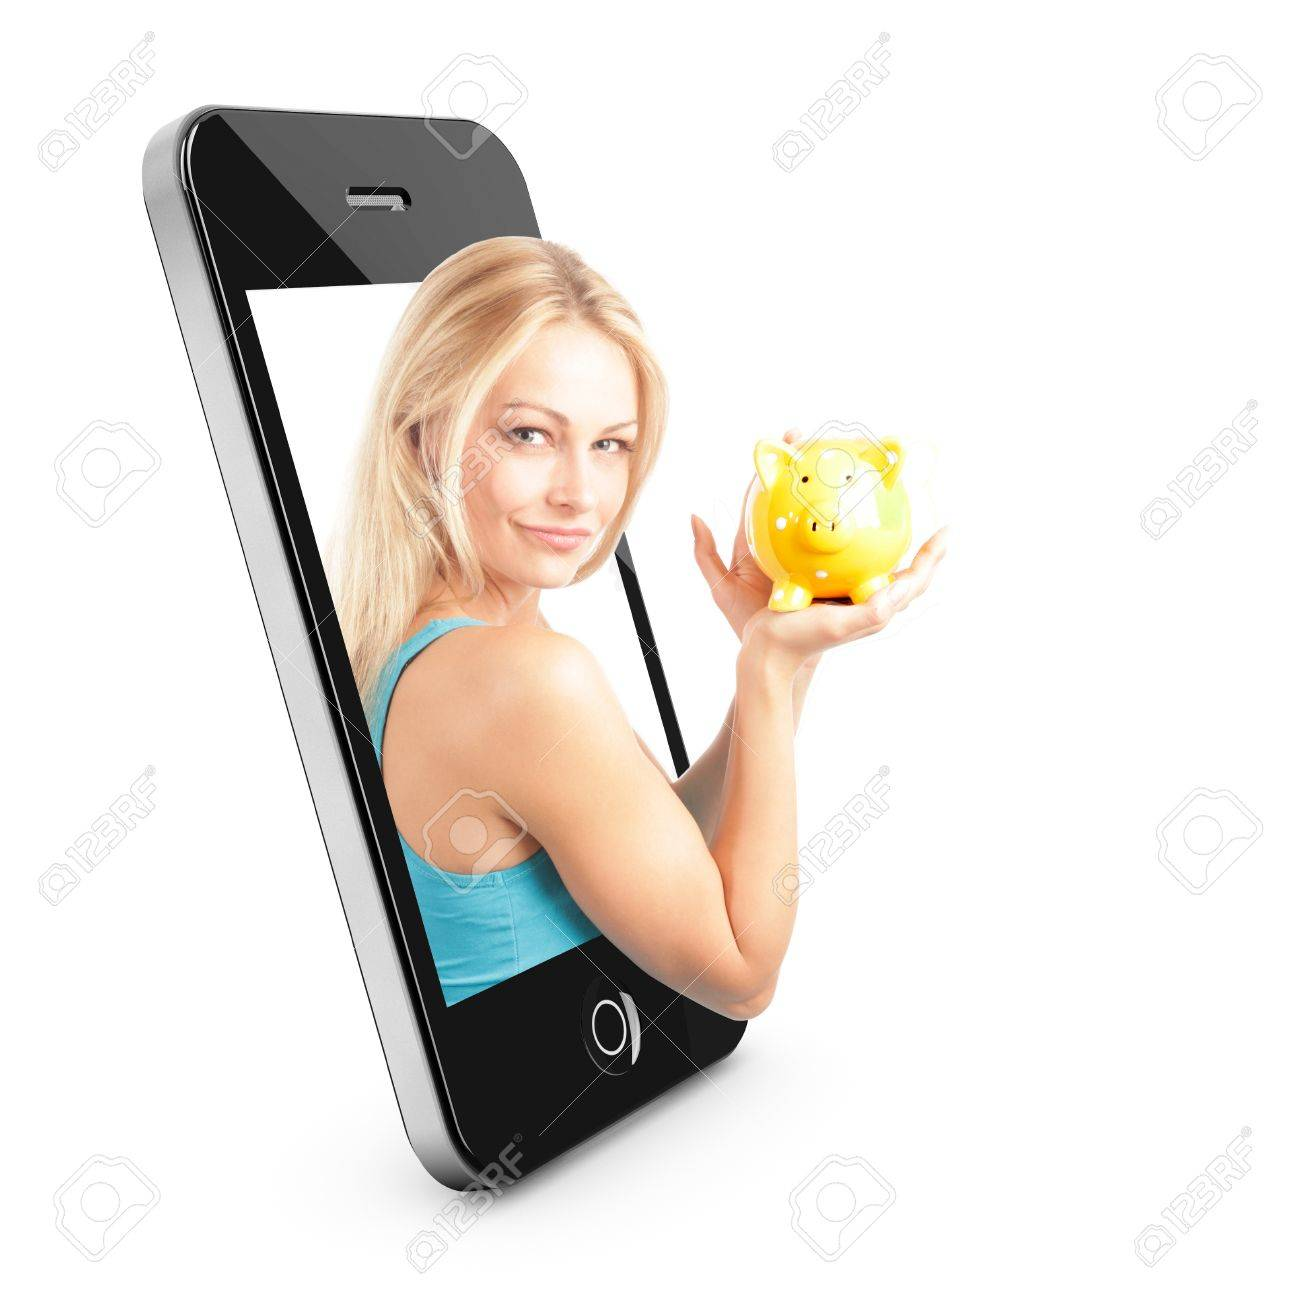 Smart phone Concept with beautiful blonde woman reaching out of the phone interface with piggy bank Stock Photo - 11602956